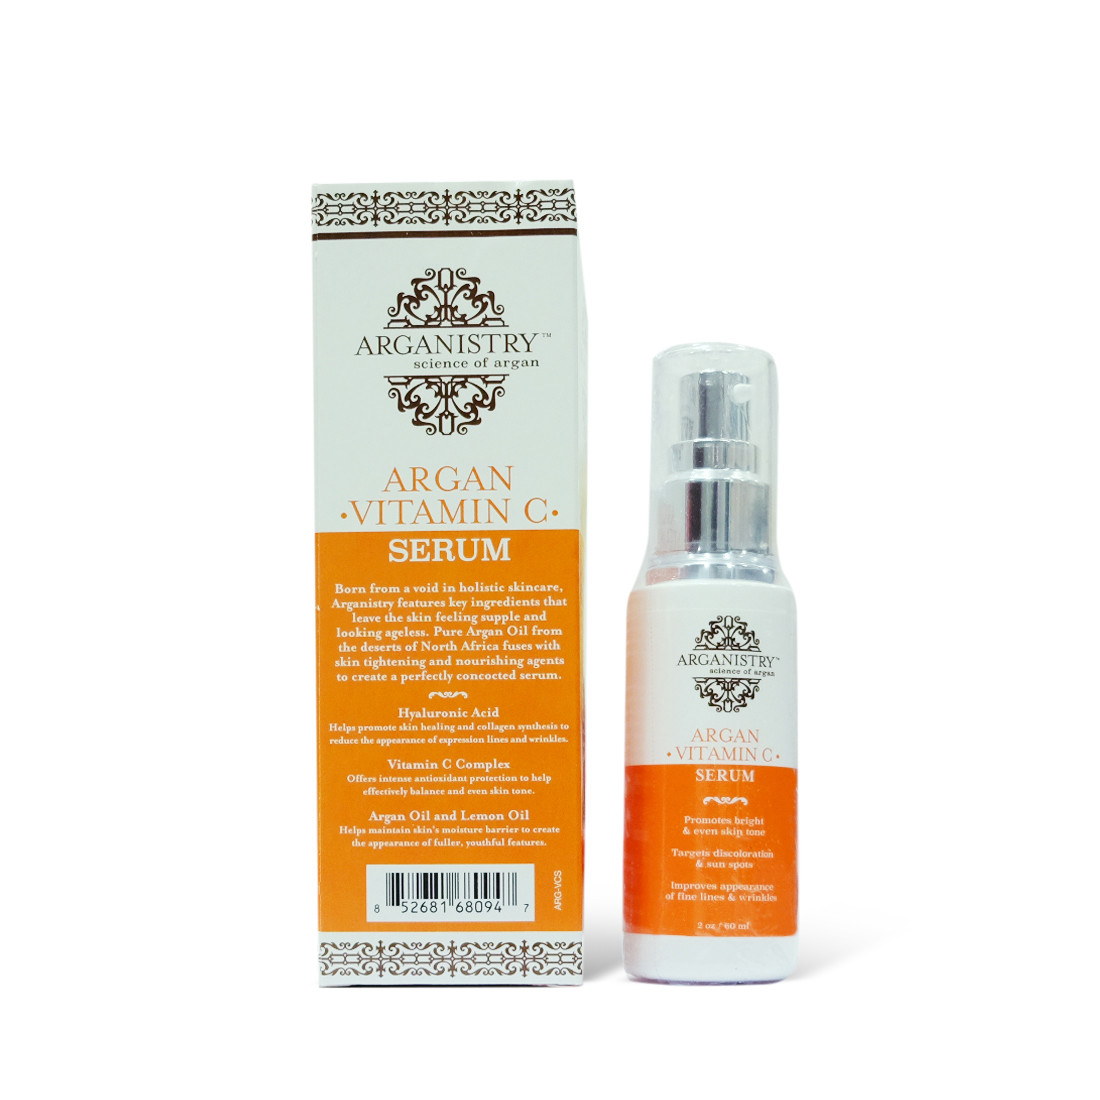 ARGAN VITAMIN C SERUM